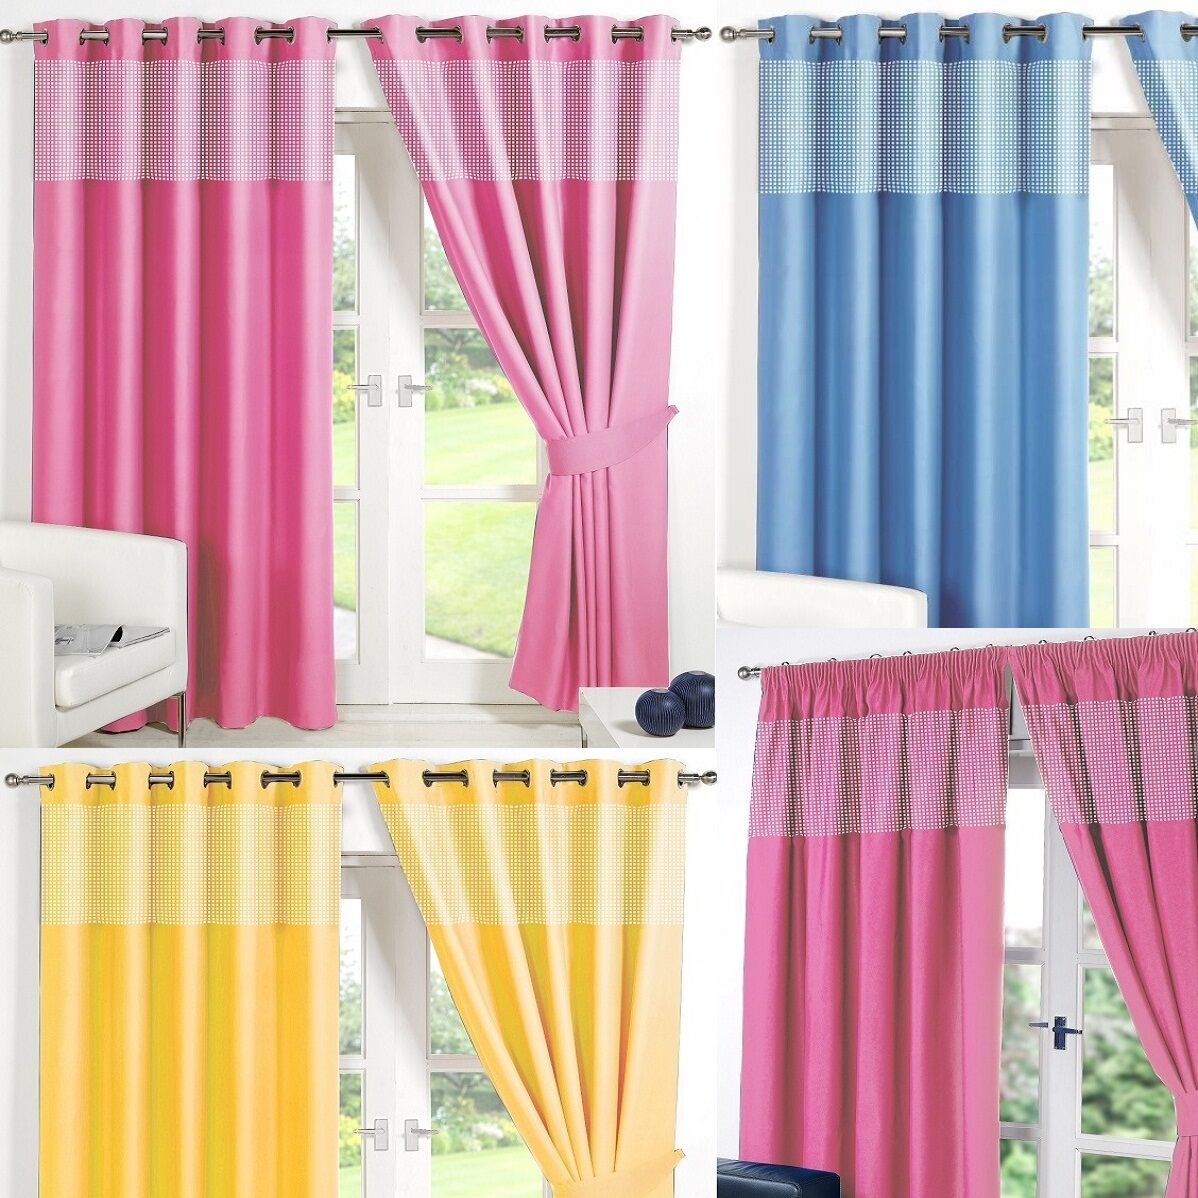 Gingham Kids Bedroom Curtains Thermal Blackout Curtain Eyelet Or Pencil Pleat Picclick Uk